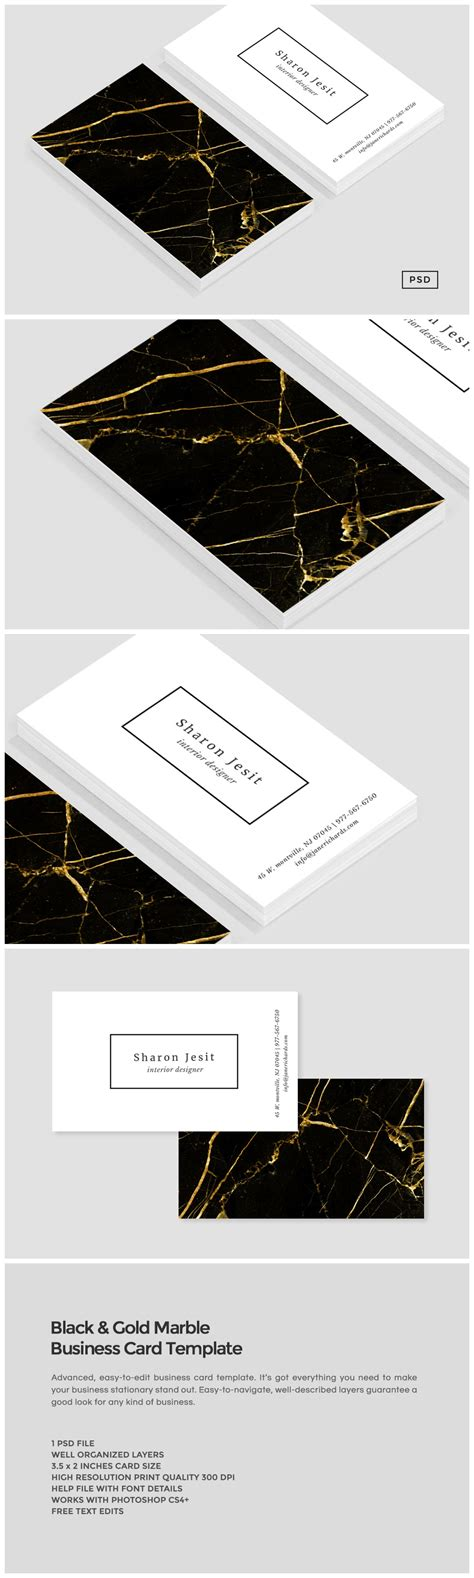 gold business card template free black gold marble business card business card